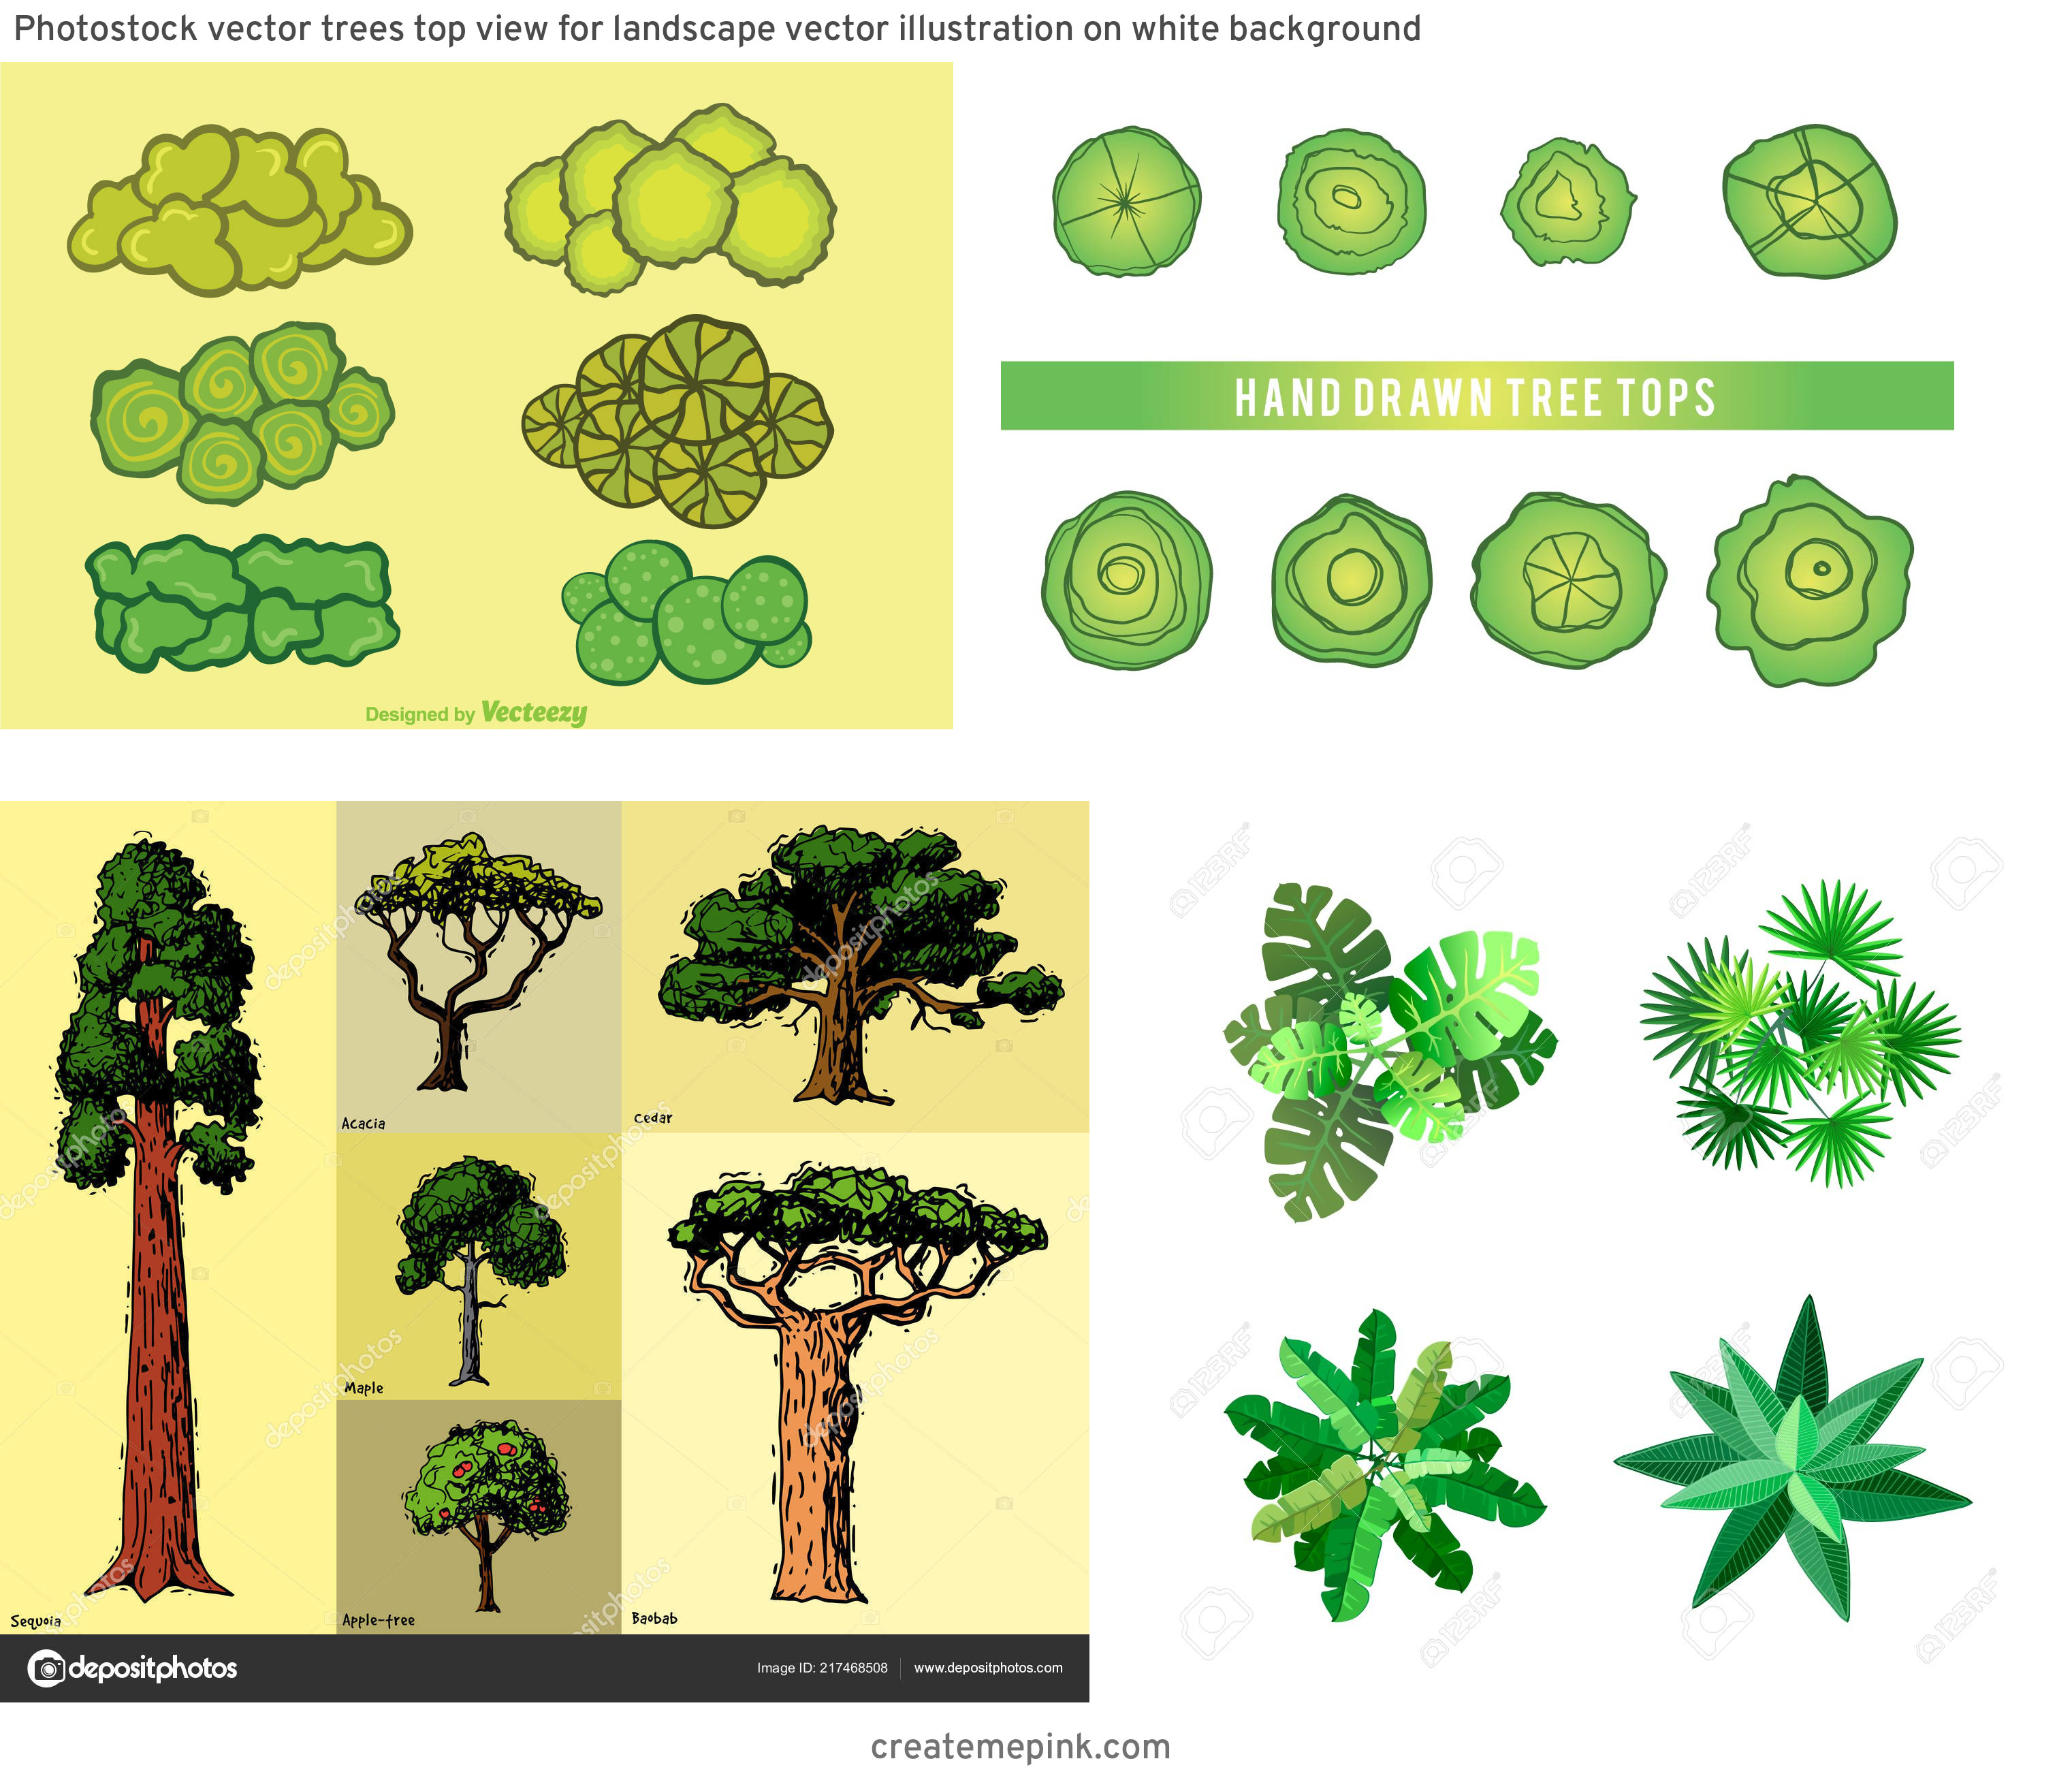 Drawn Free Vector Tree Tops: Photostock Vector Trees Top View For Landscape Vector Illustration On White Background